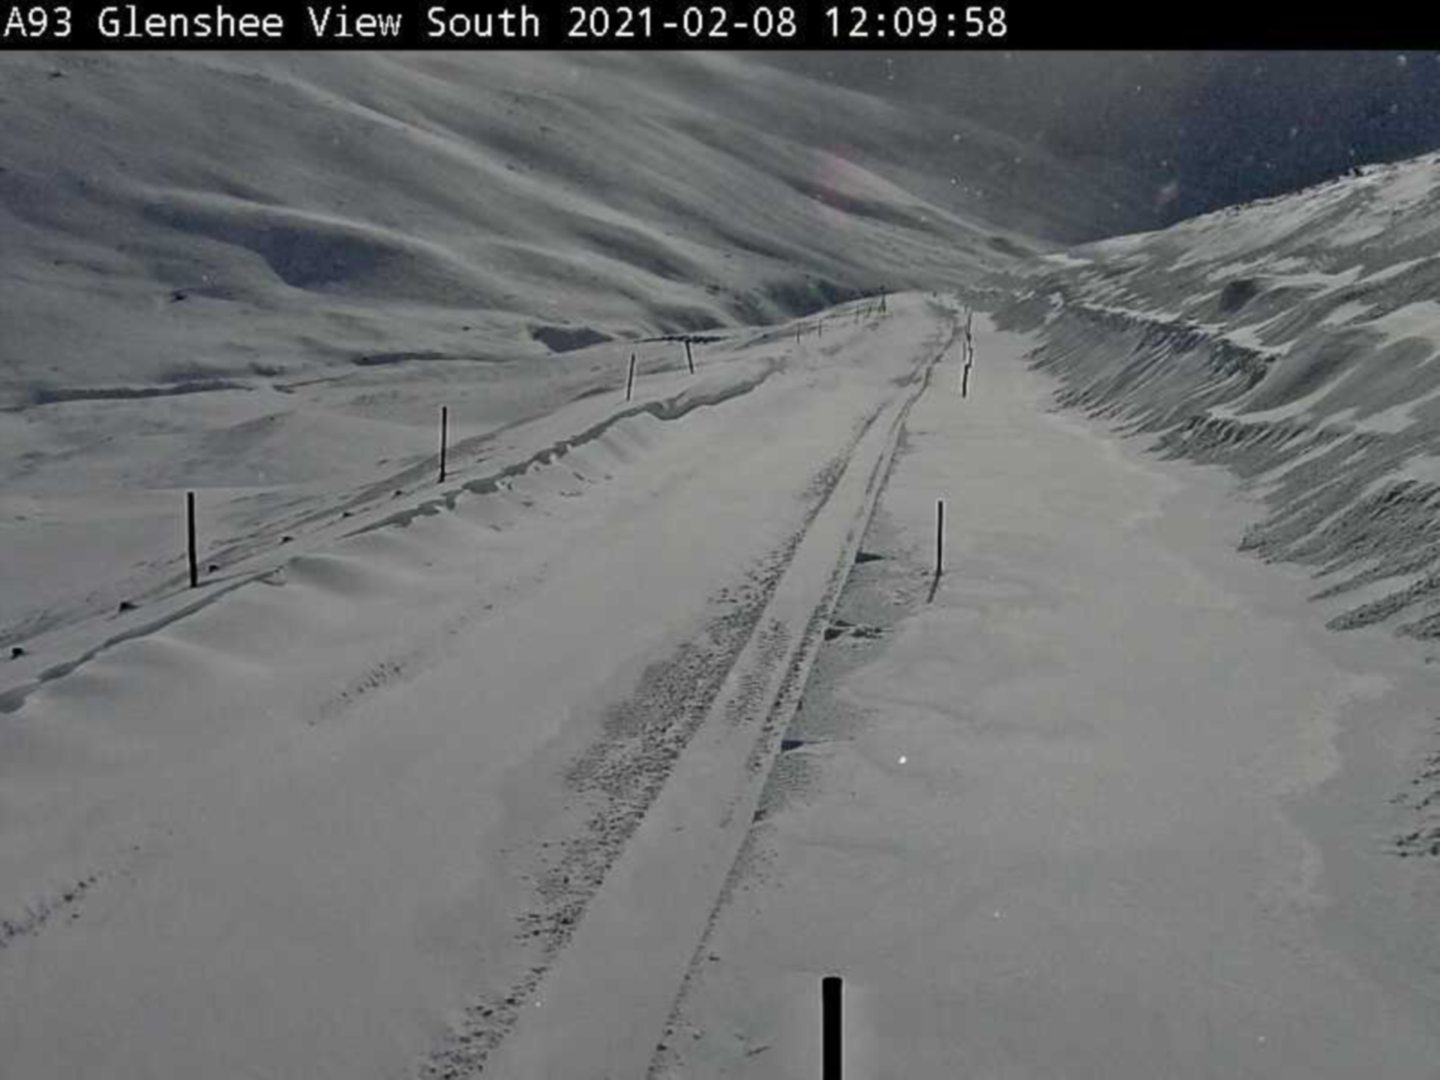 The snow on the A93 looking south at Glenshee.